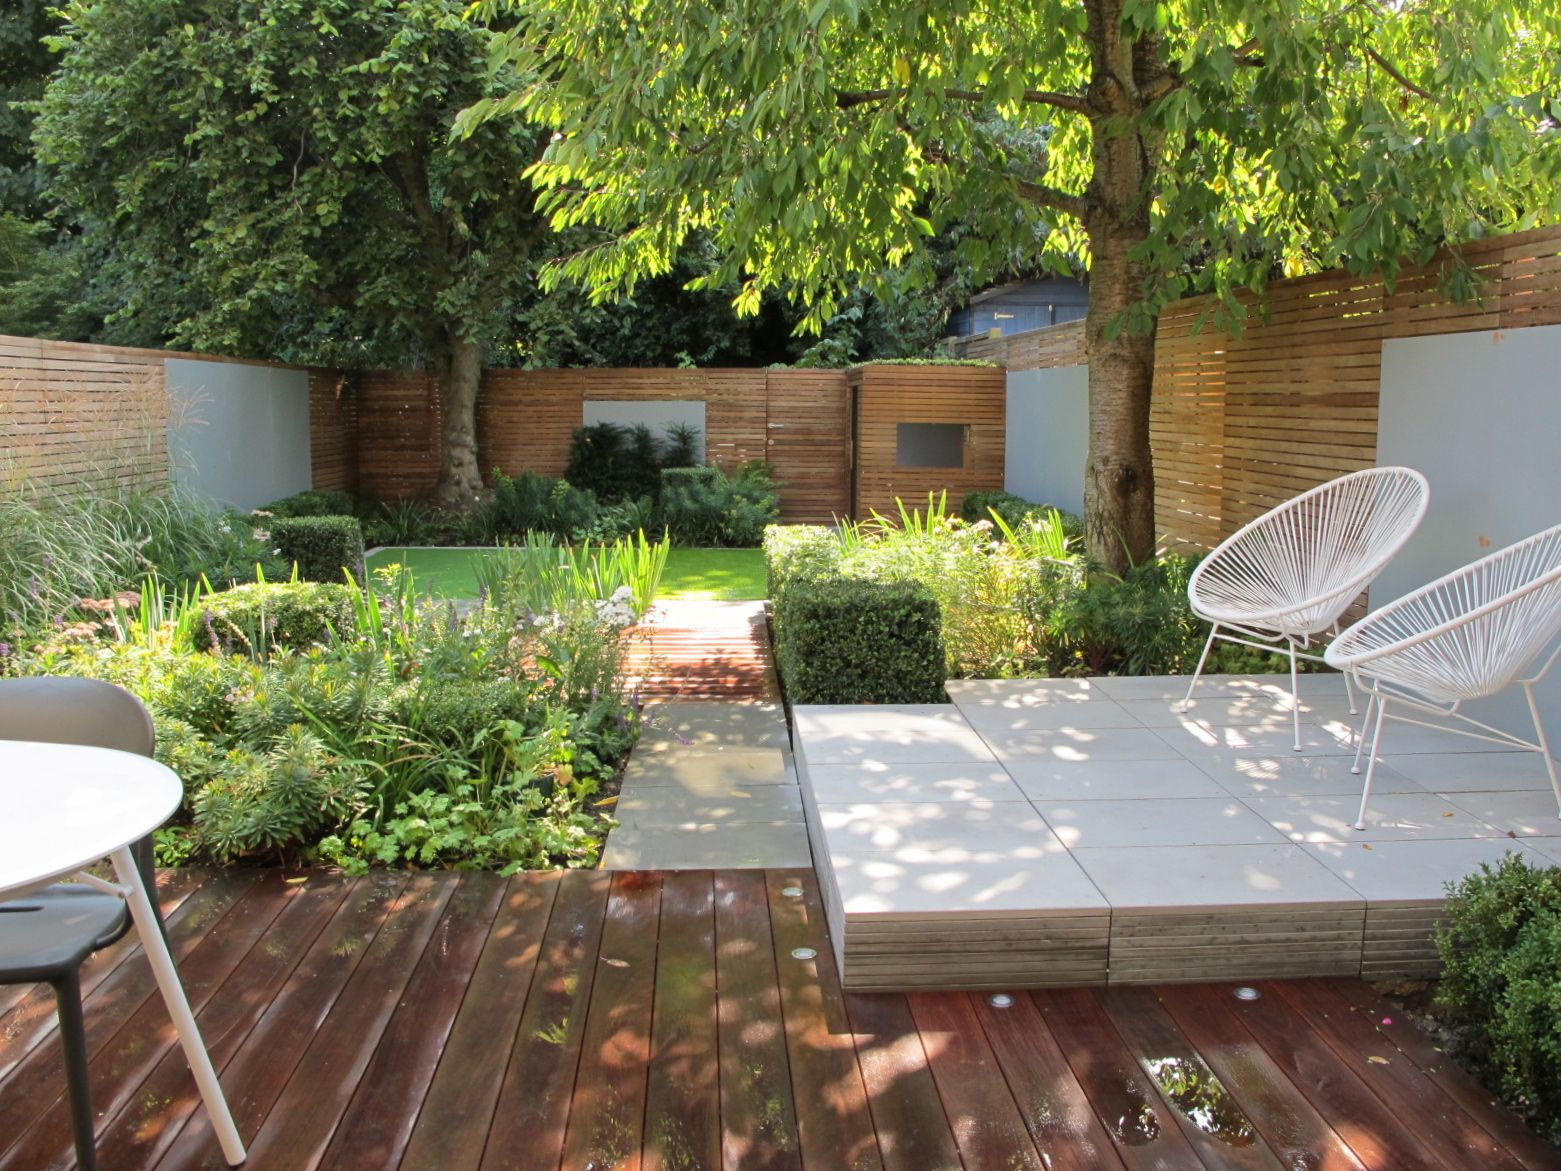 Garden as featured on alan titchmarsh 39 s show love your for Garden layout ideas